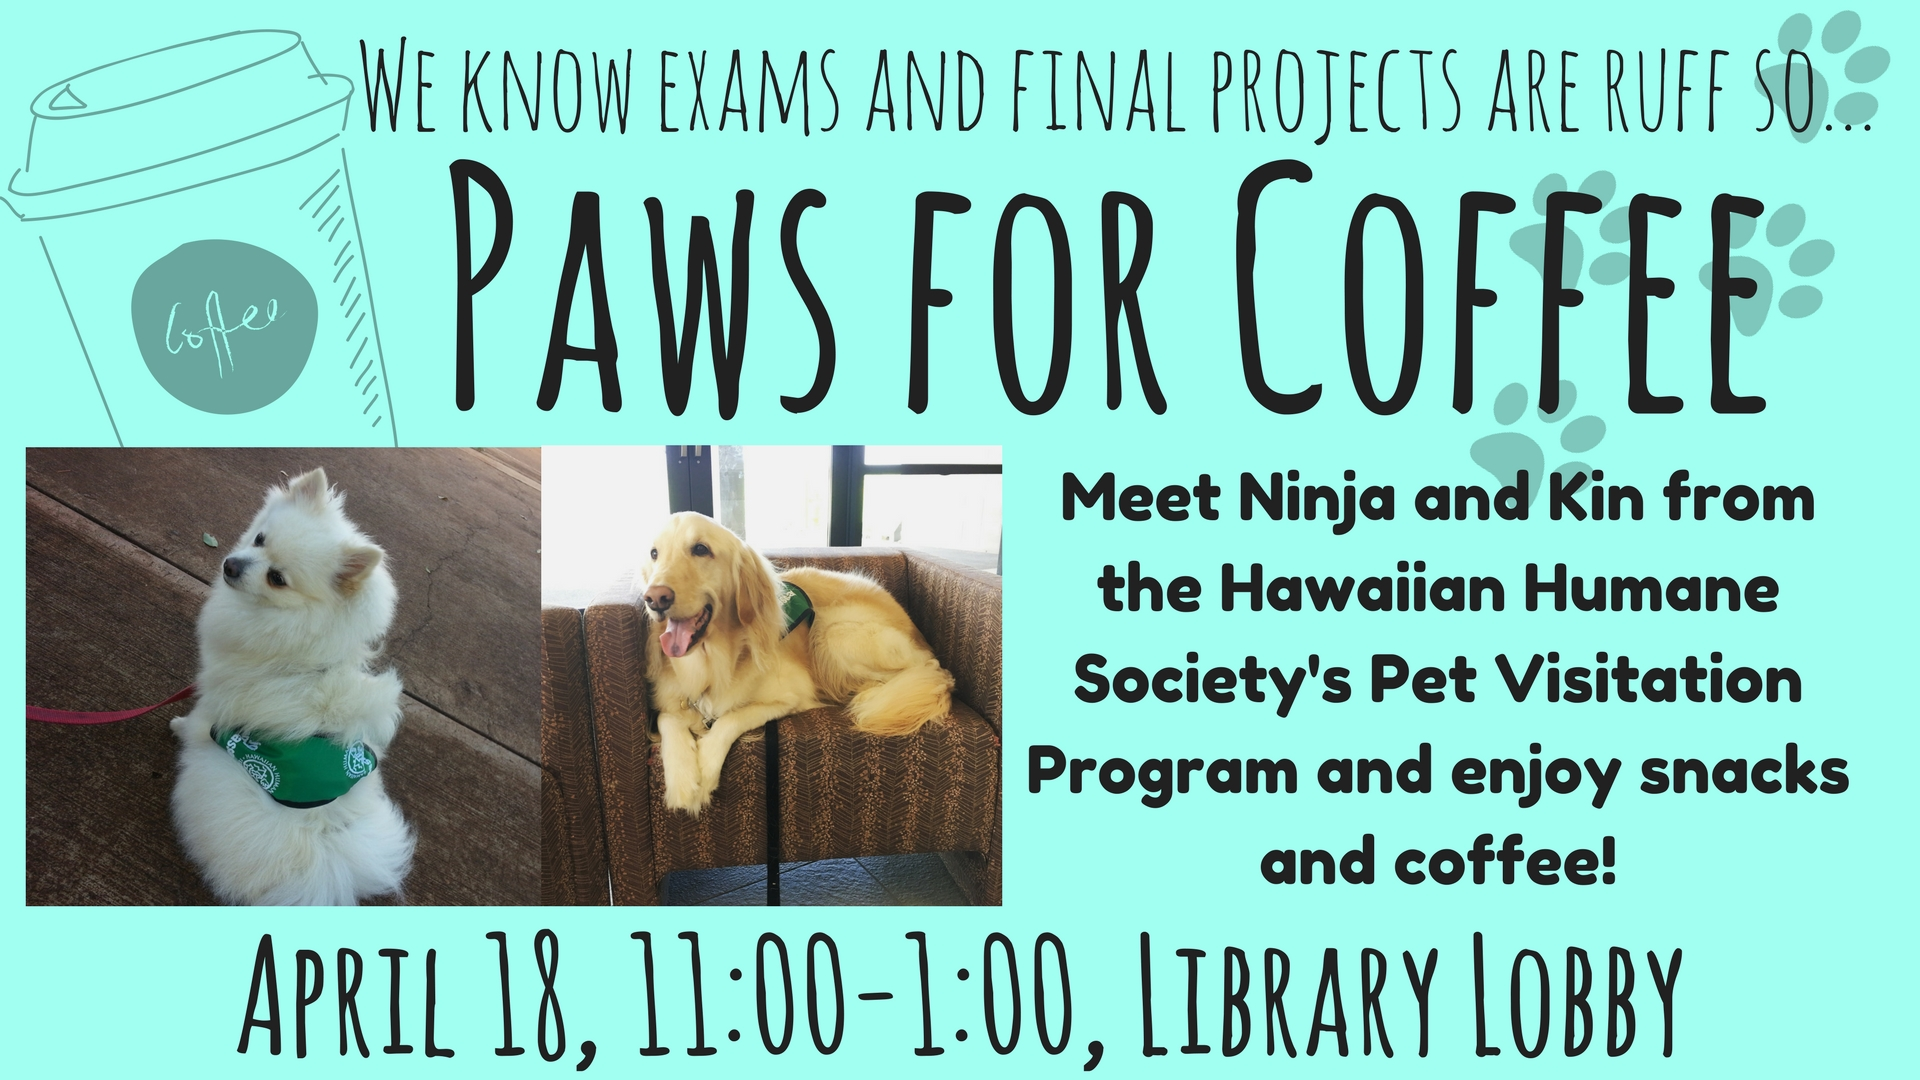 Paws for Coffee flyer